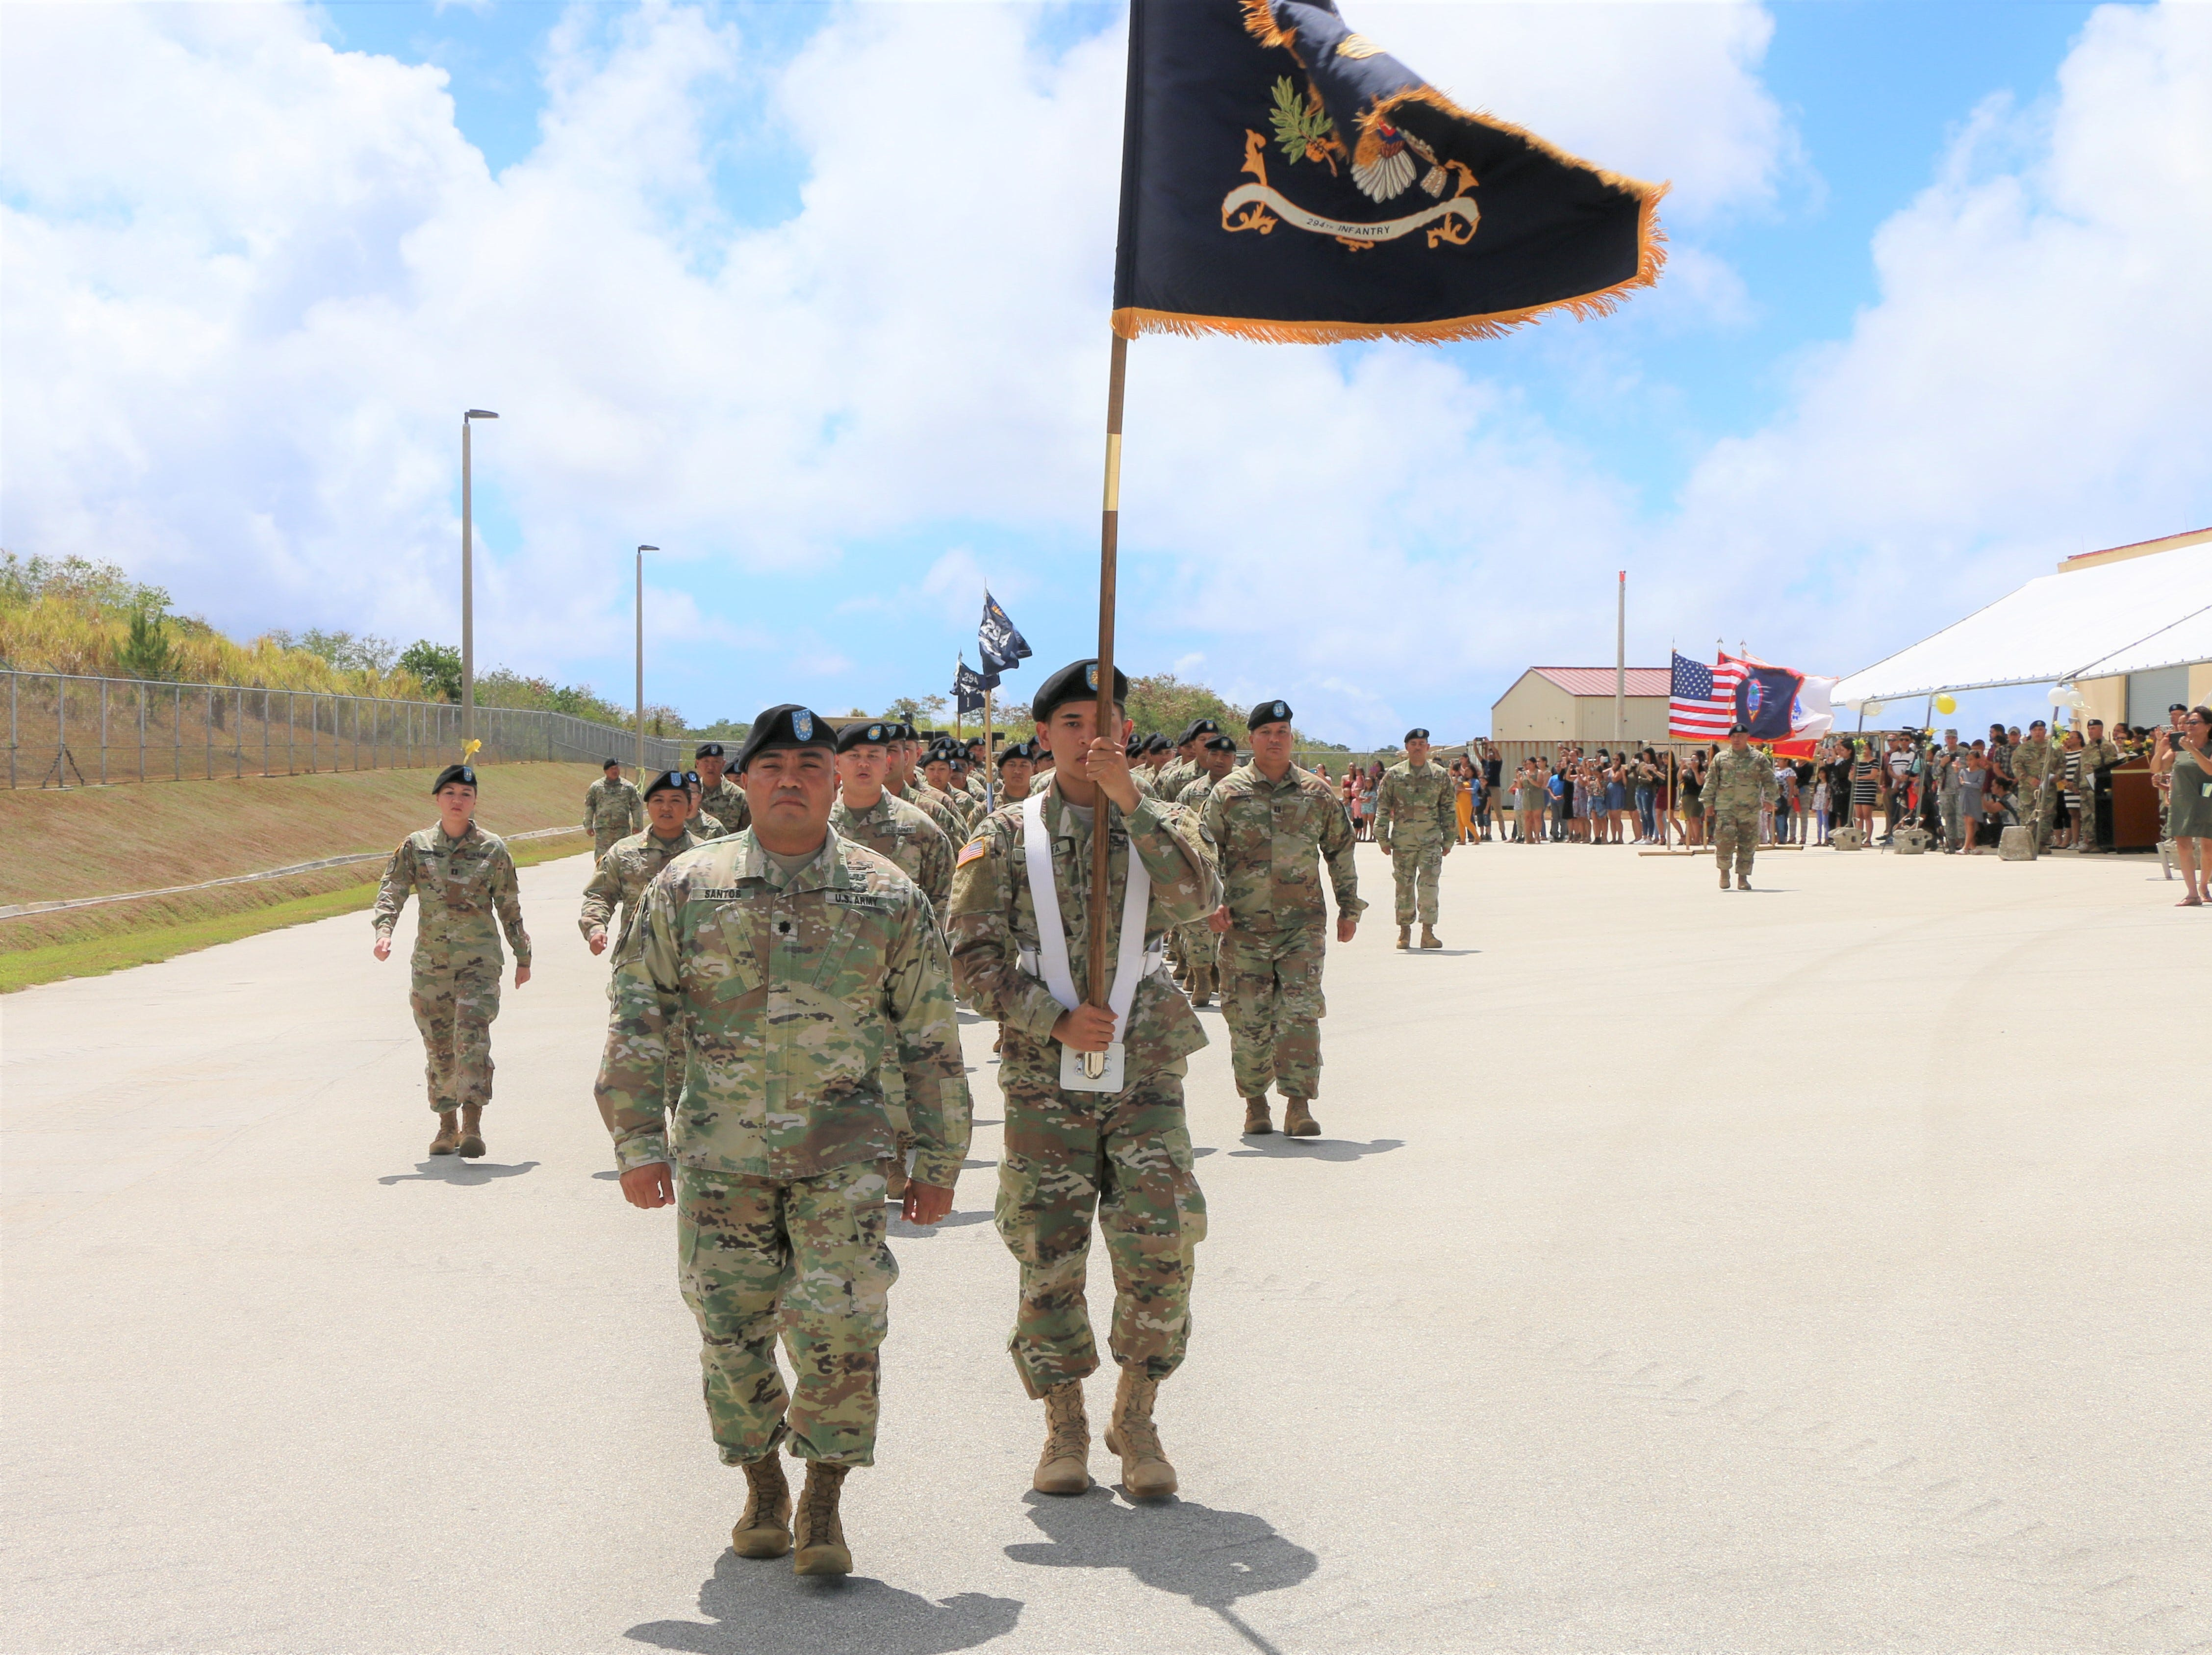 Soldiers, from the Guam Army National Guard's 1st-294th Infantry Regiment, march off at the end of a Sendoff Ceremony on Saturday, May 11, at the Guard's Readiness Center in Barrigada. The Soldiers are part of a deployment in support of a peacekeeping mission in the Sinai.